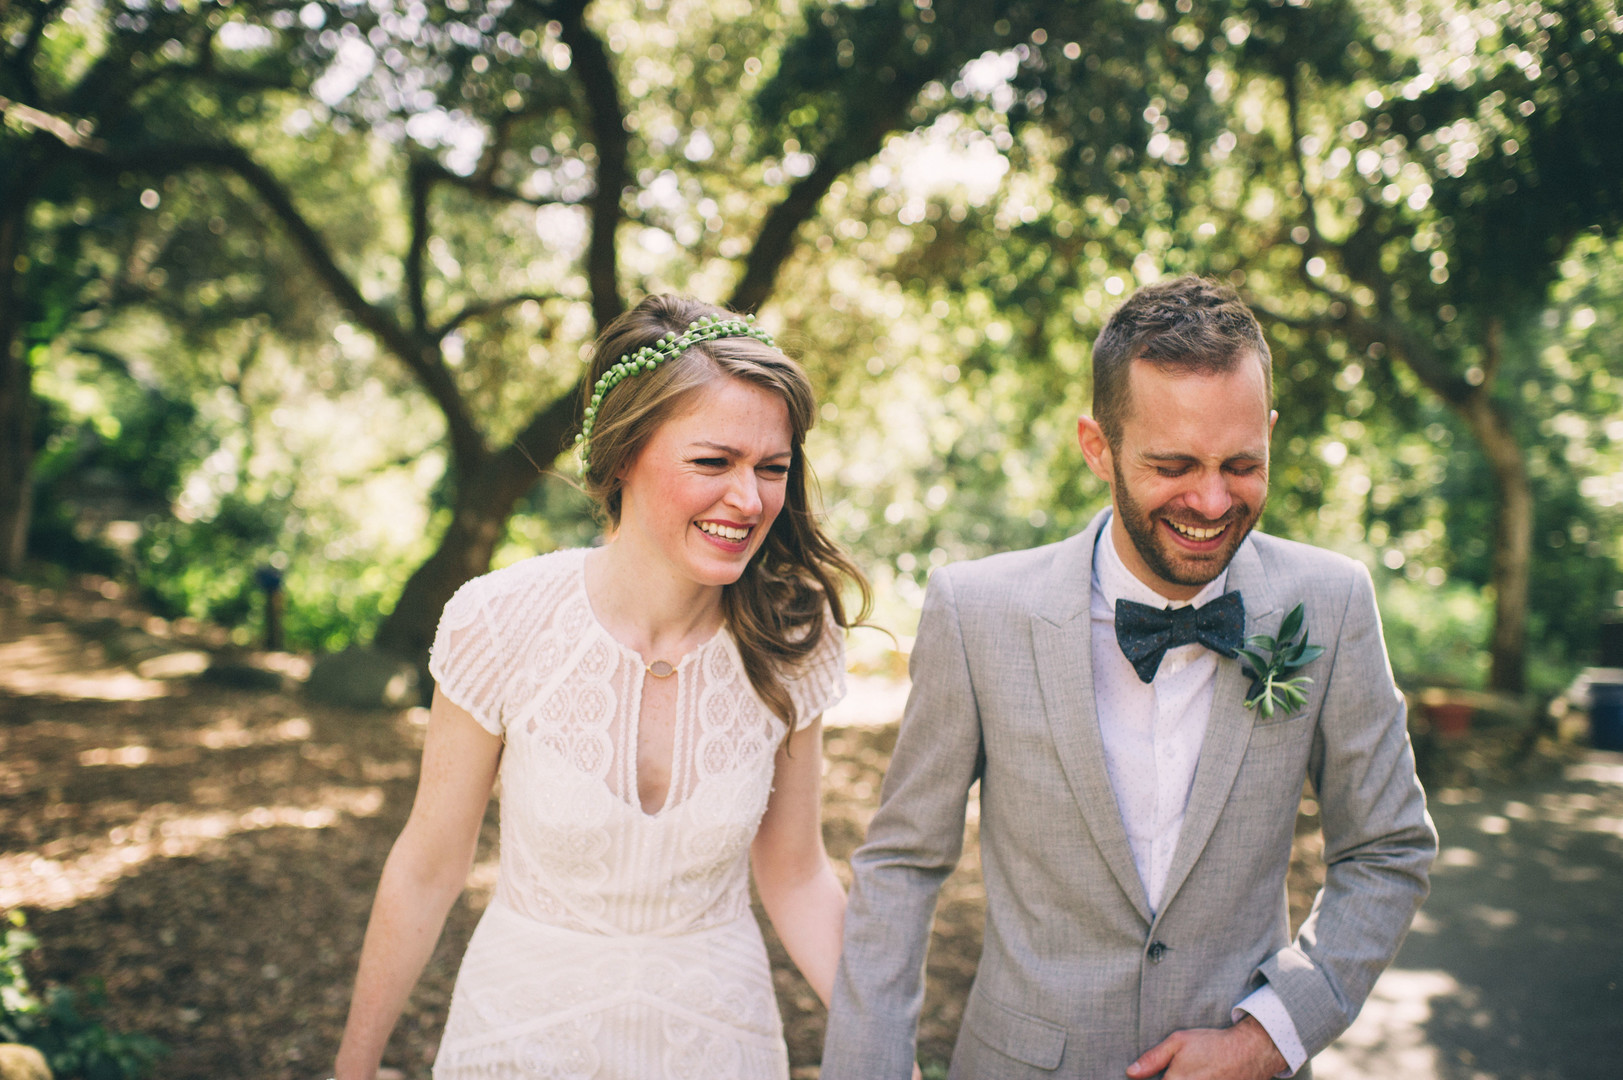 www.santabarbarawedding.com | Sarah Katherine Davis Photography | Santa Barbara Museum of Natural History | Wild Heart Events | Party Pleasers | Bride and Groom Exit Ceremony